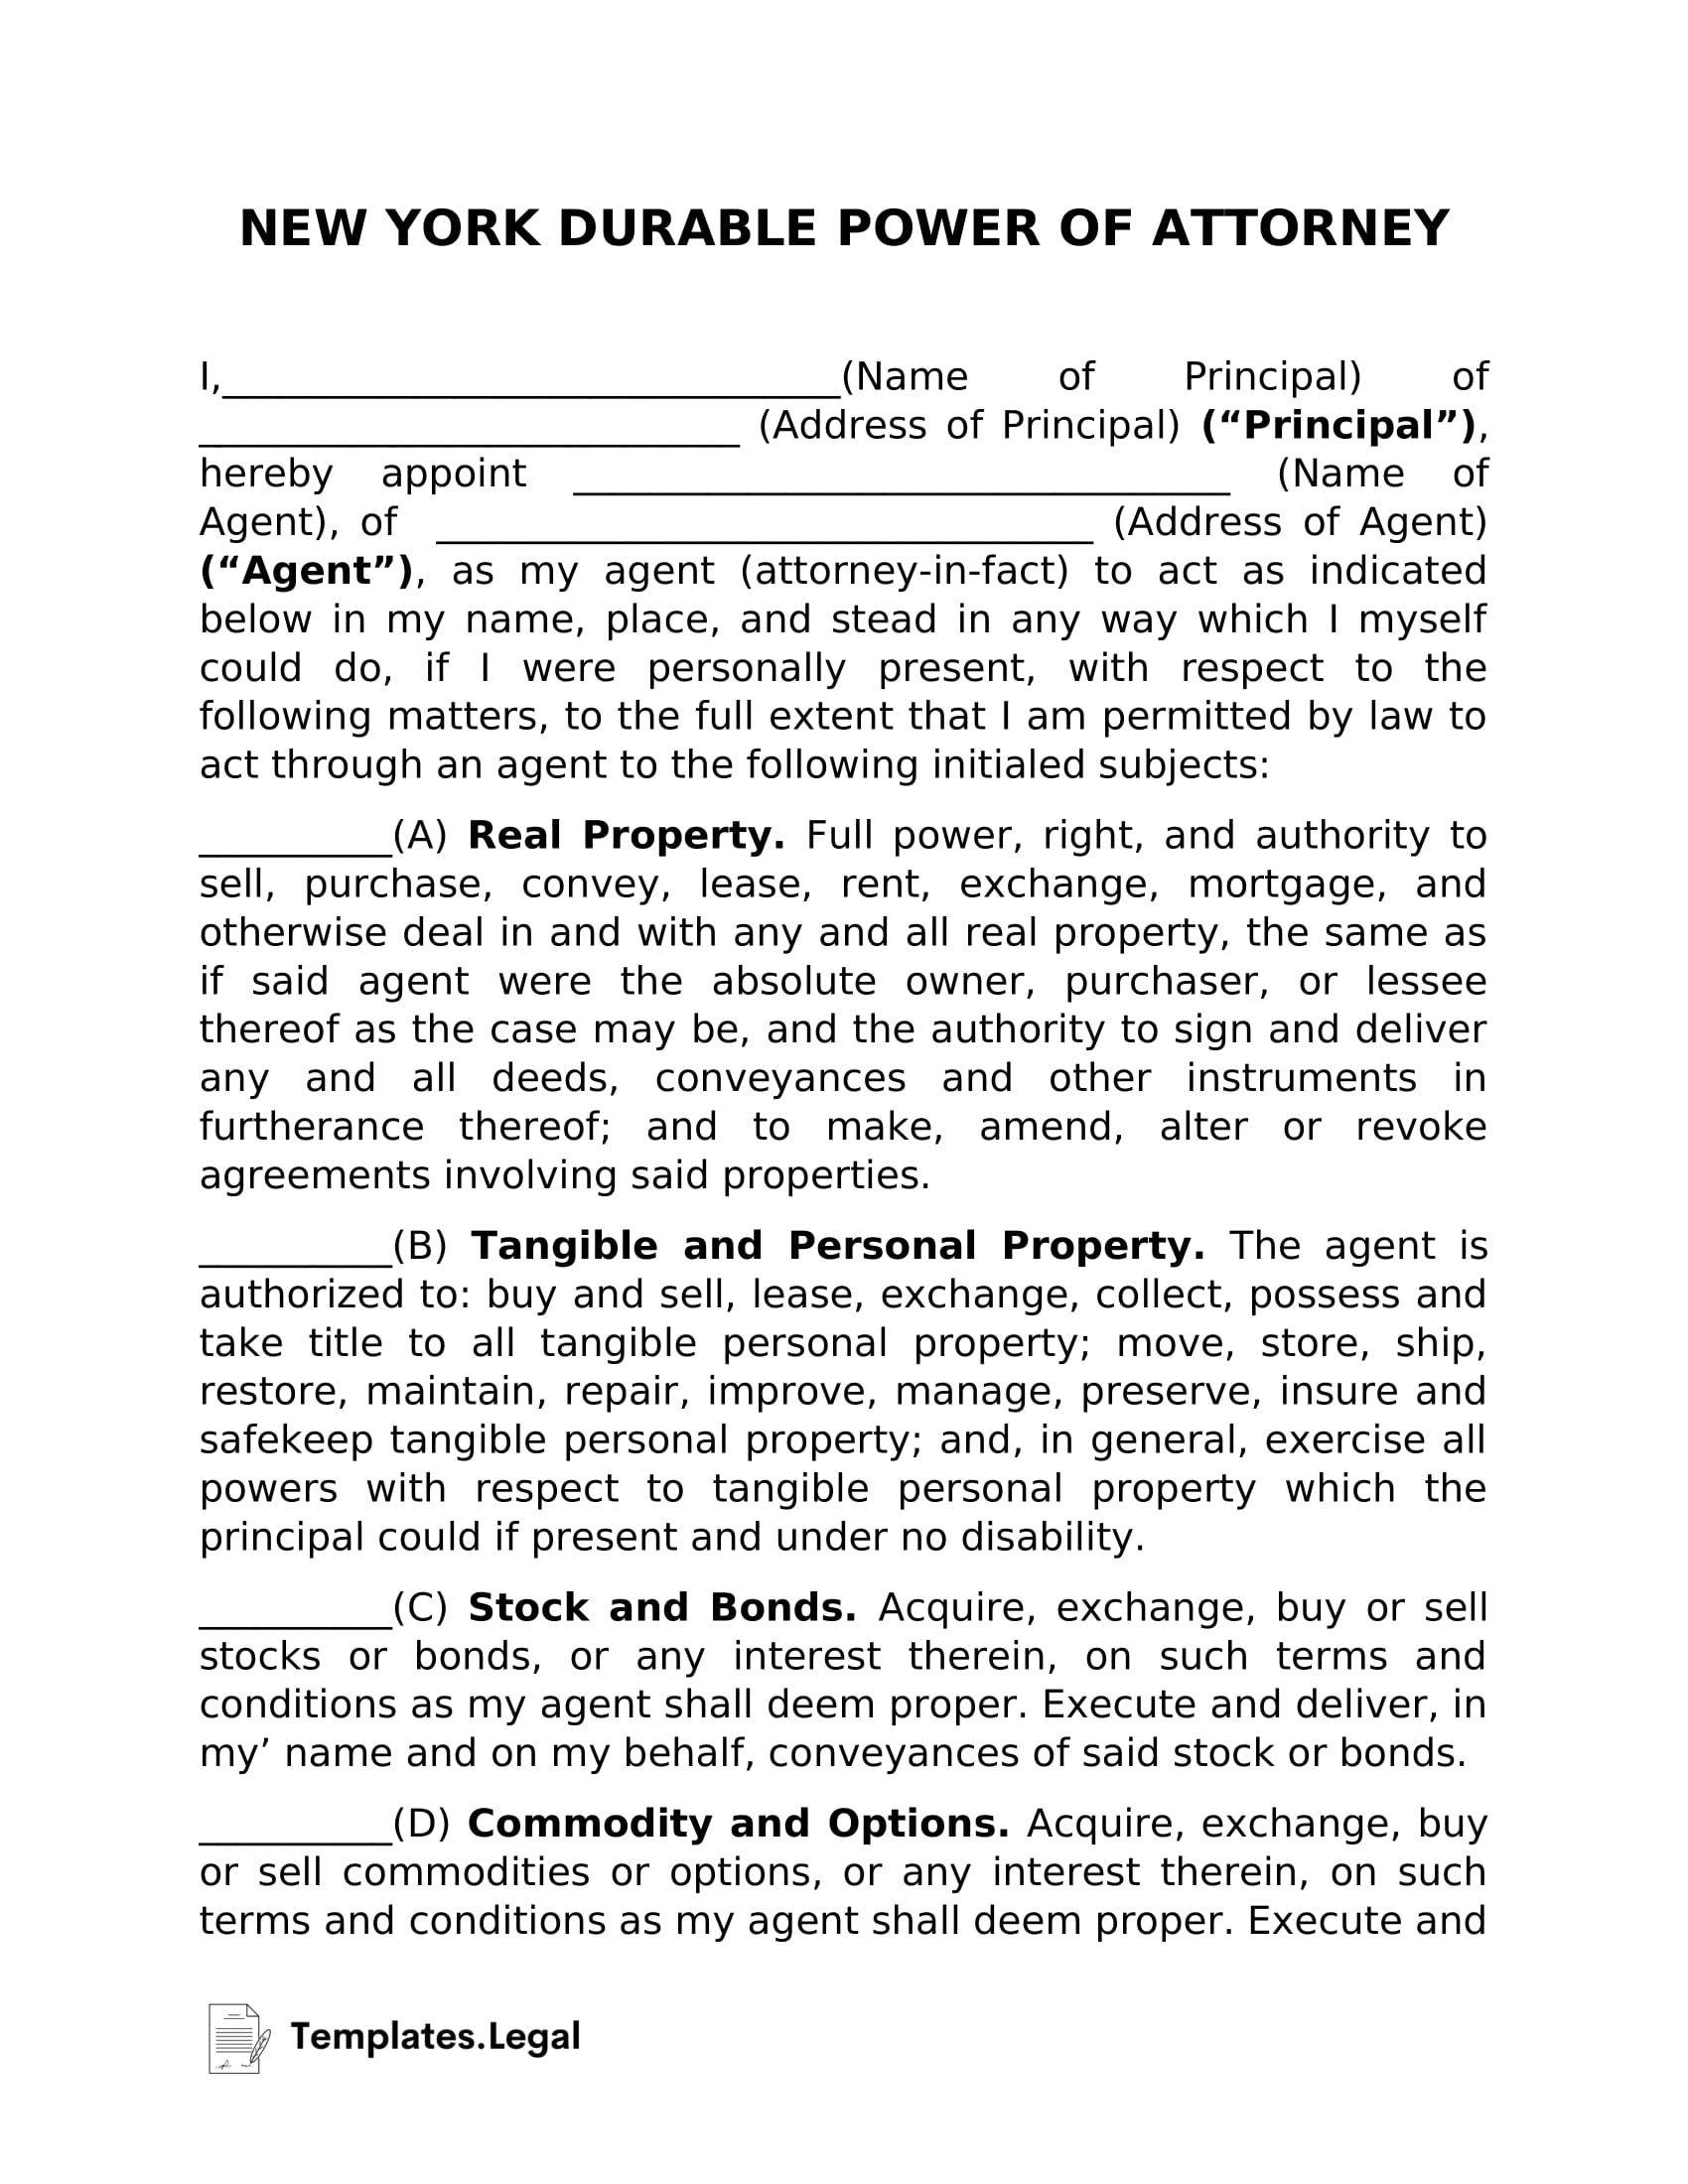 New York Durable Power of Attorney - Templates.Legal